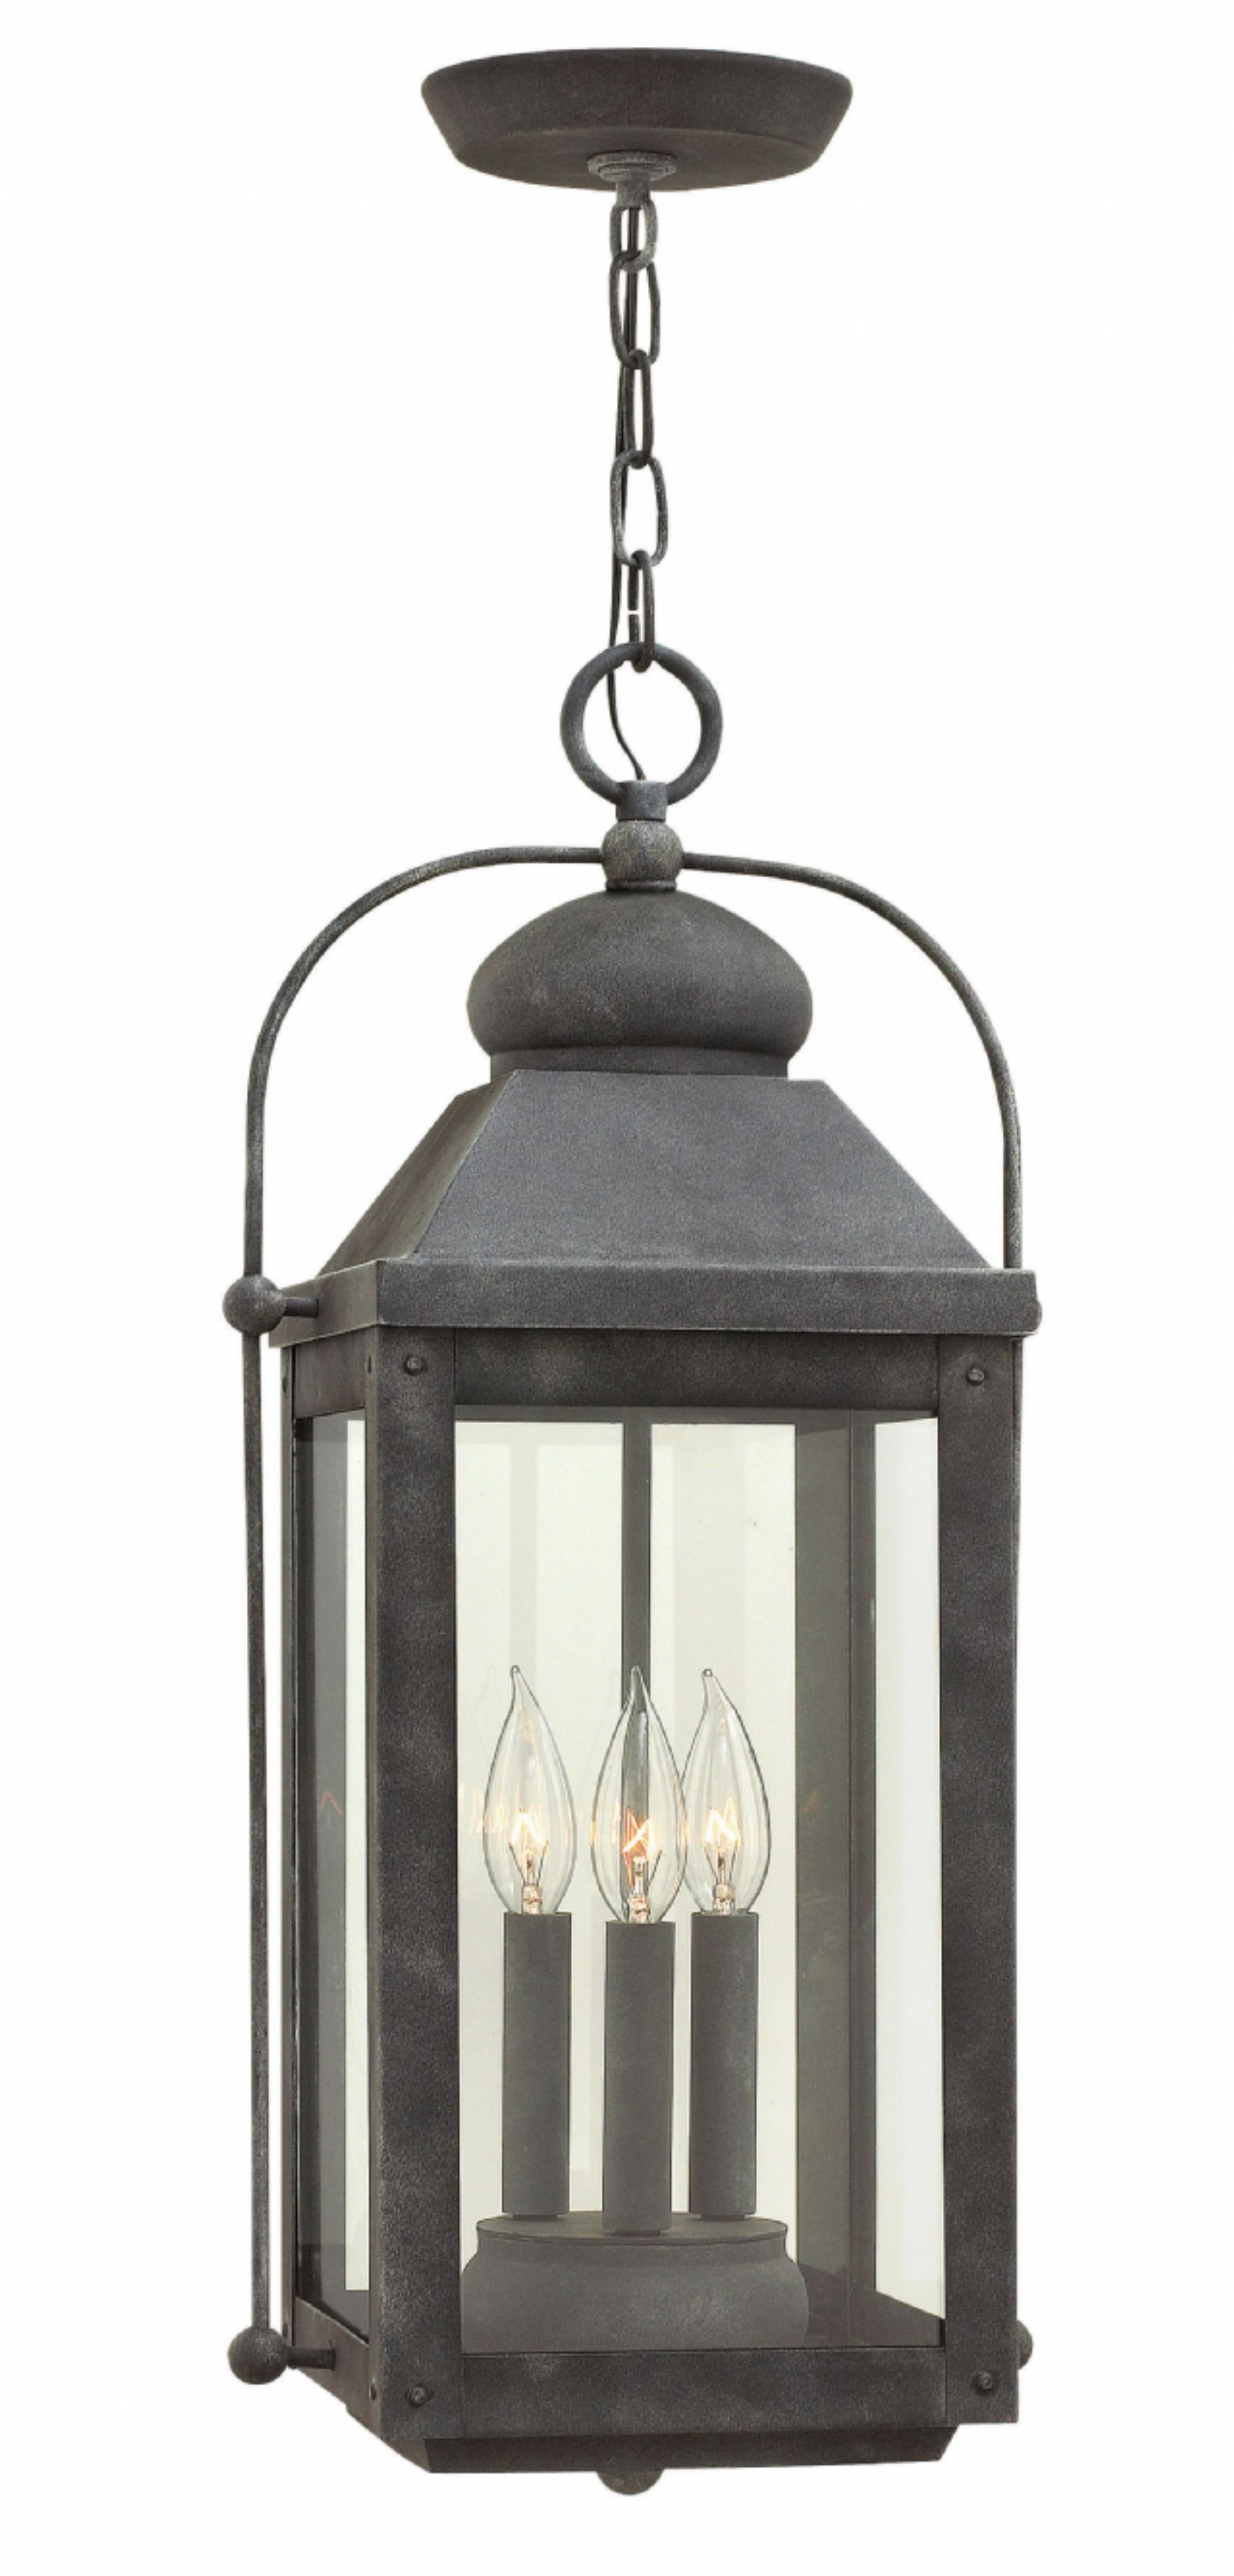 Aged Zinc Anchorage > Exterior Ceiling Mount Throughout Popular Hinkley Outdoor Hanging Lights (View 2 of 20)